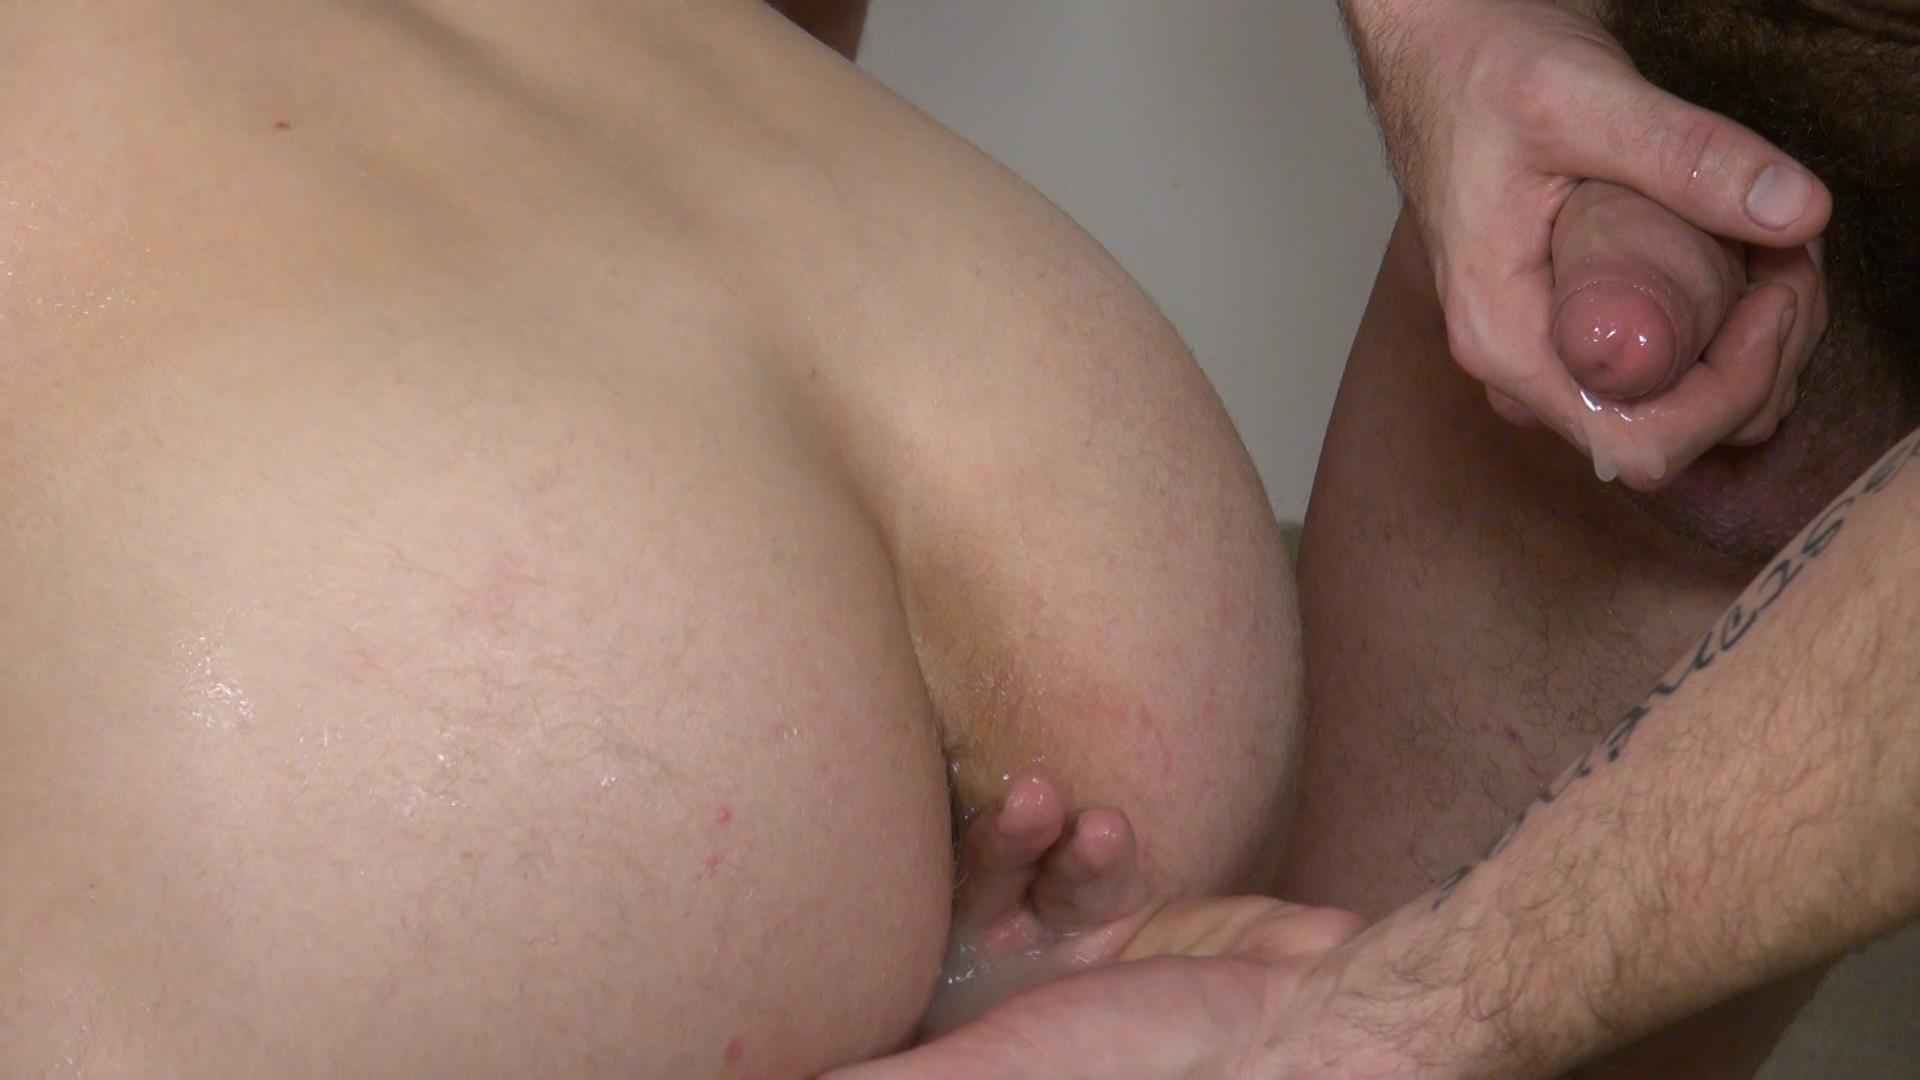 Raw and Rough Bareback Gay Sex Orgy Amateur Gay Porn 06 Six Hairy Hung Guys Pounding A Bottom At A Bareback Sex Party